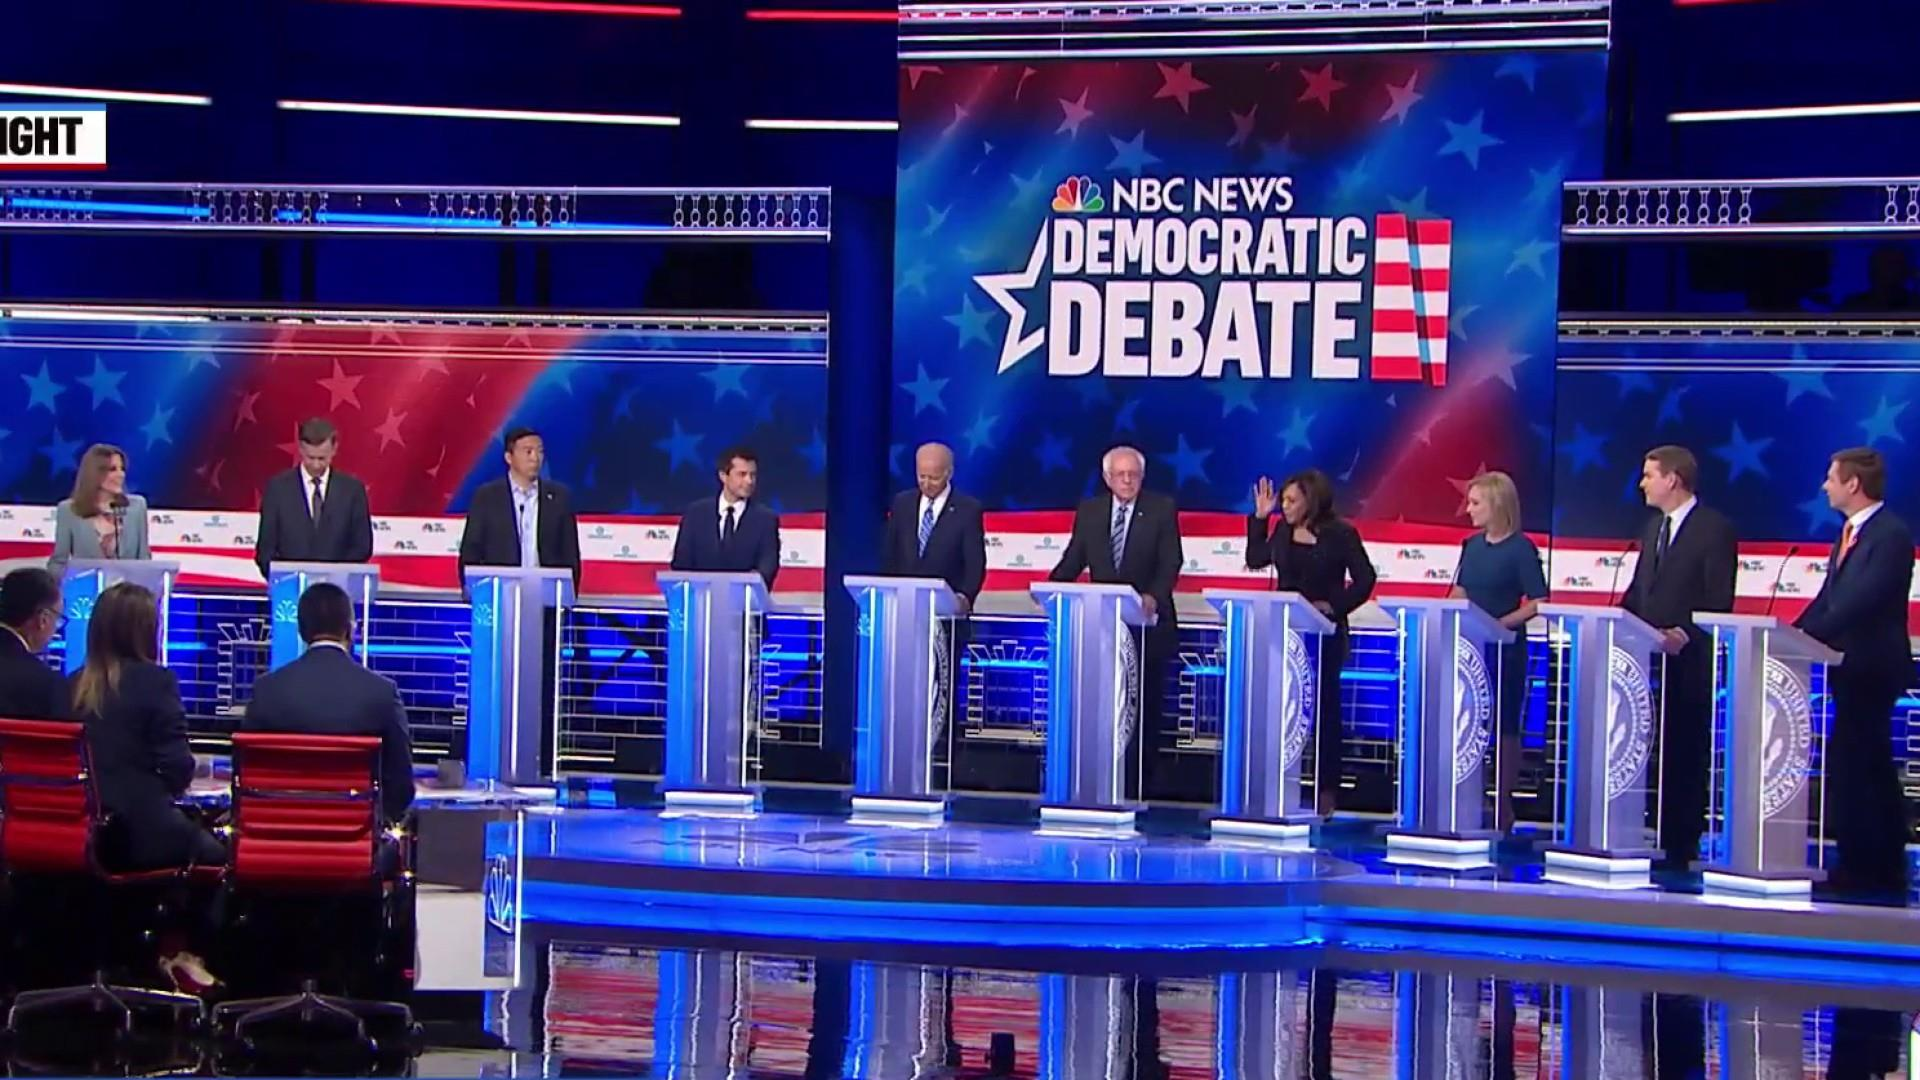 Dems square off in contentious second round of debate